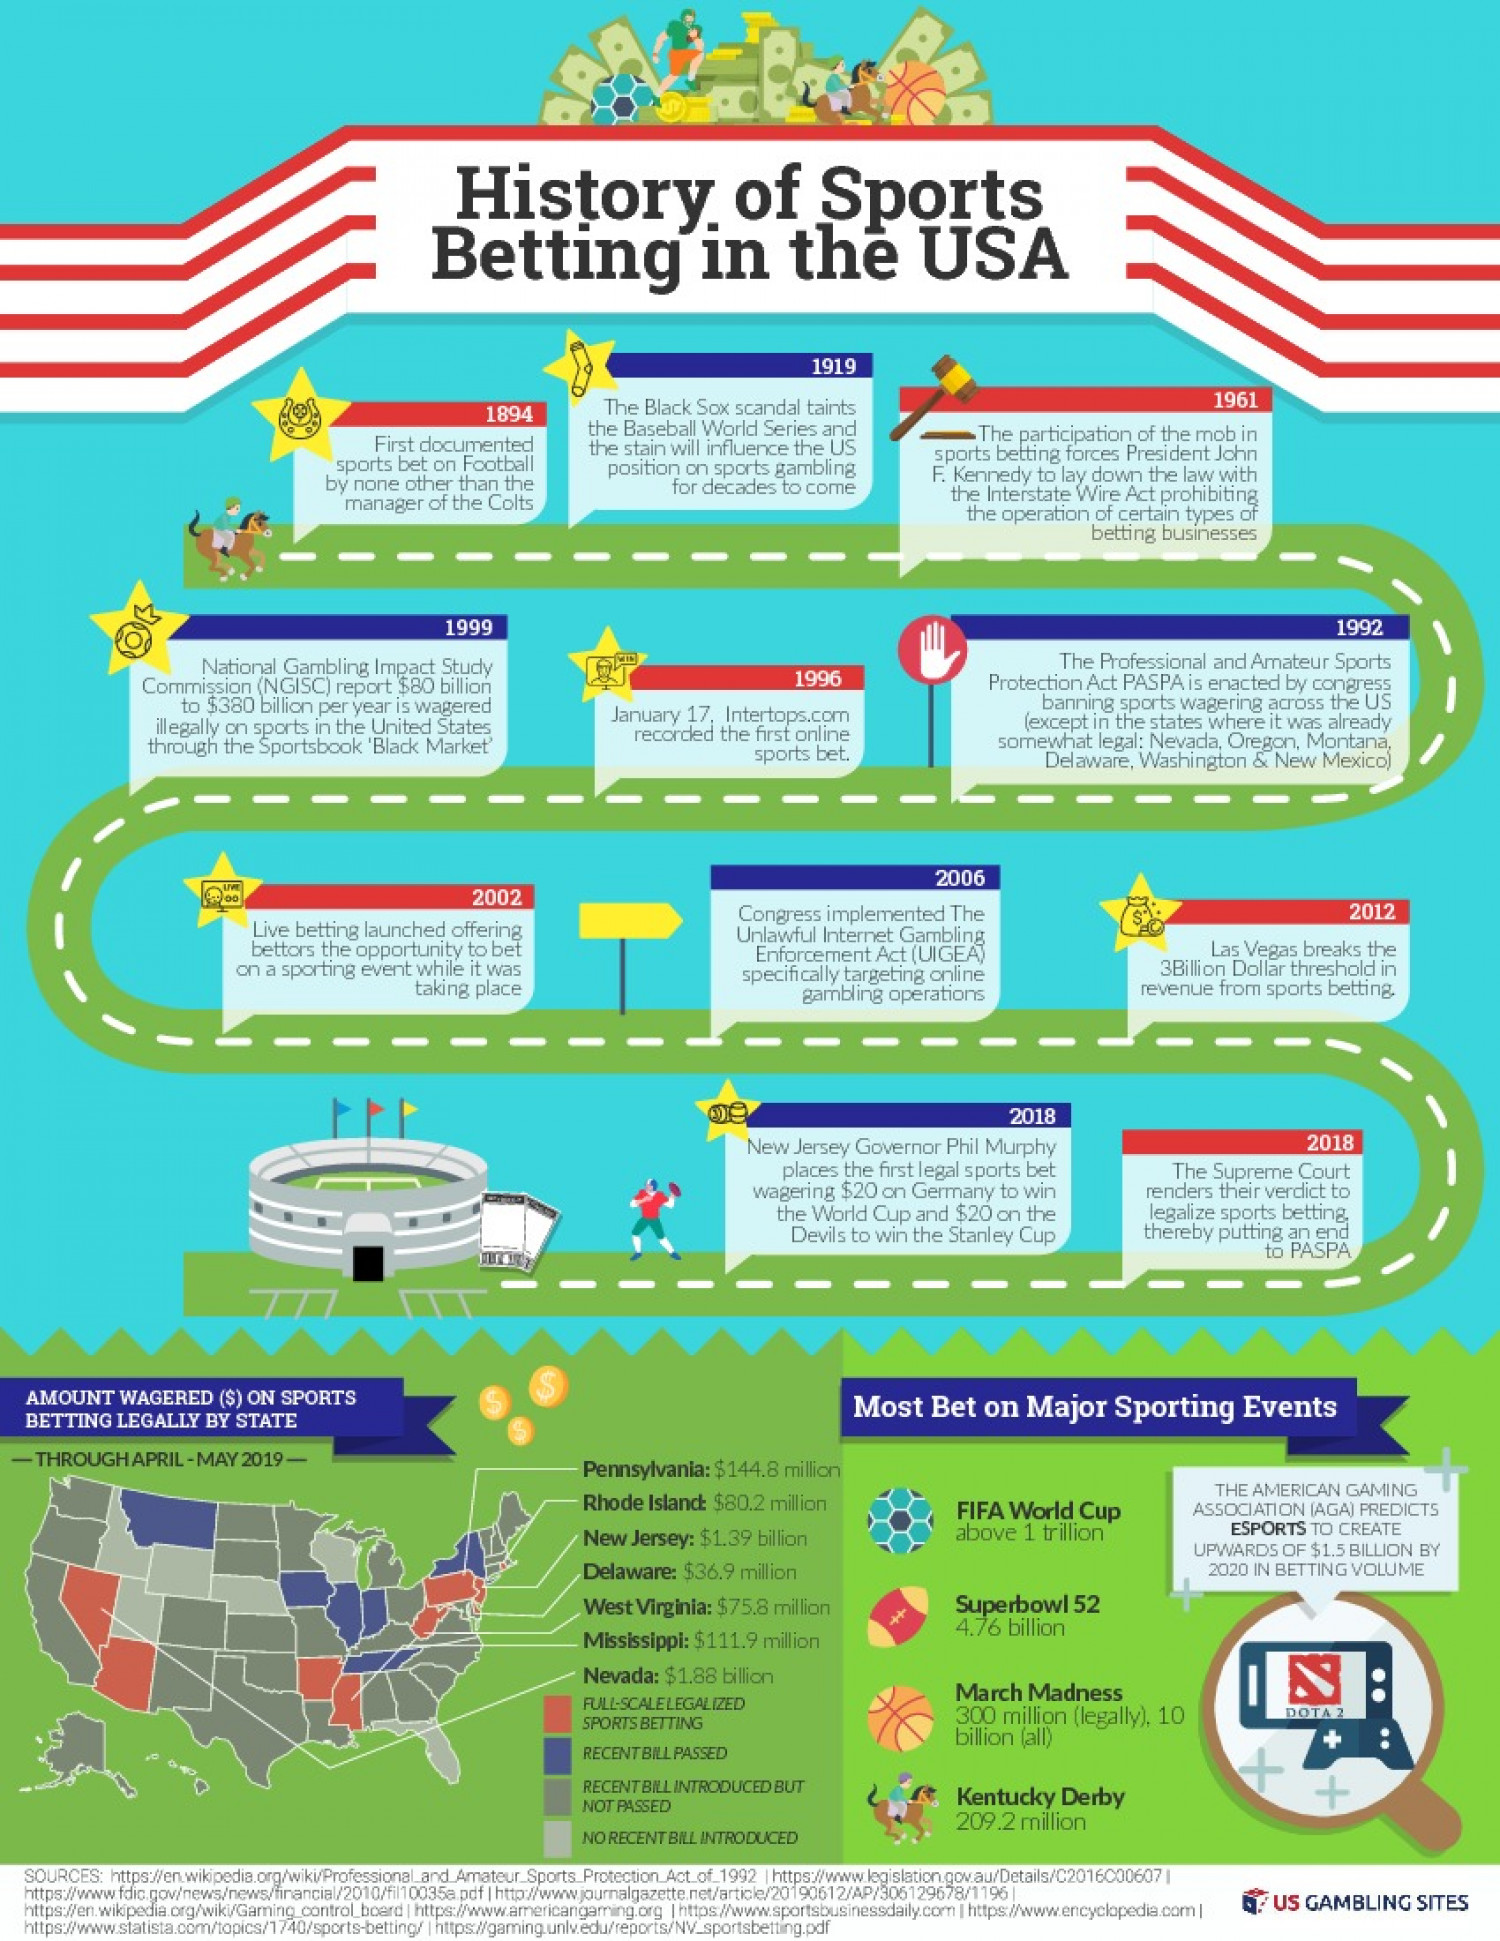 History of Sports Betting in the USA Infographic